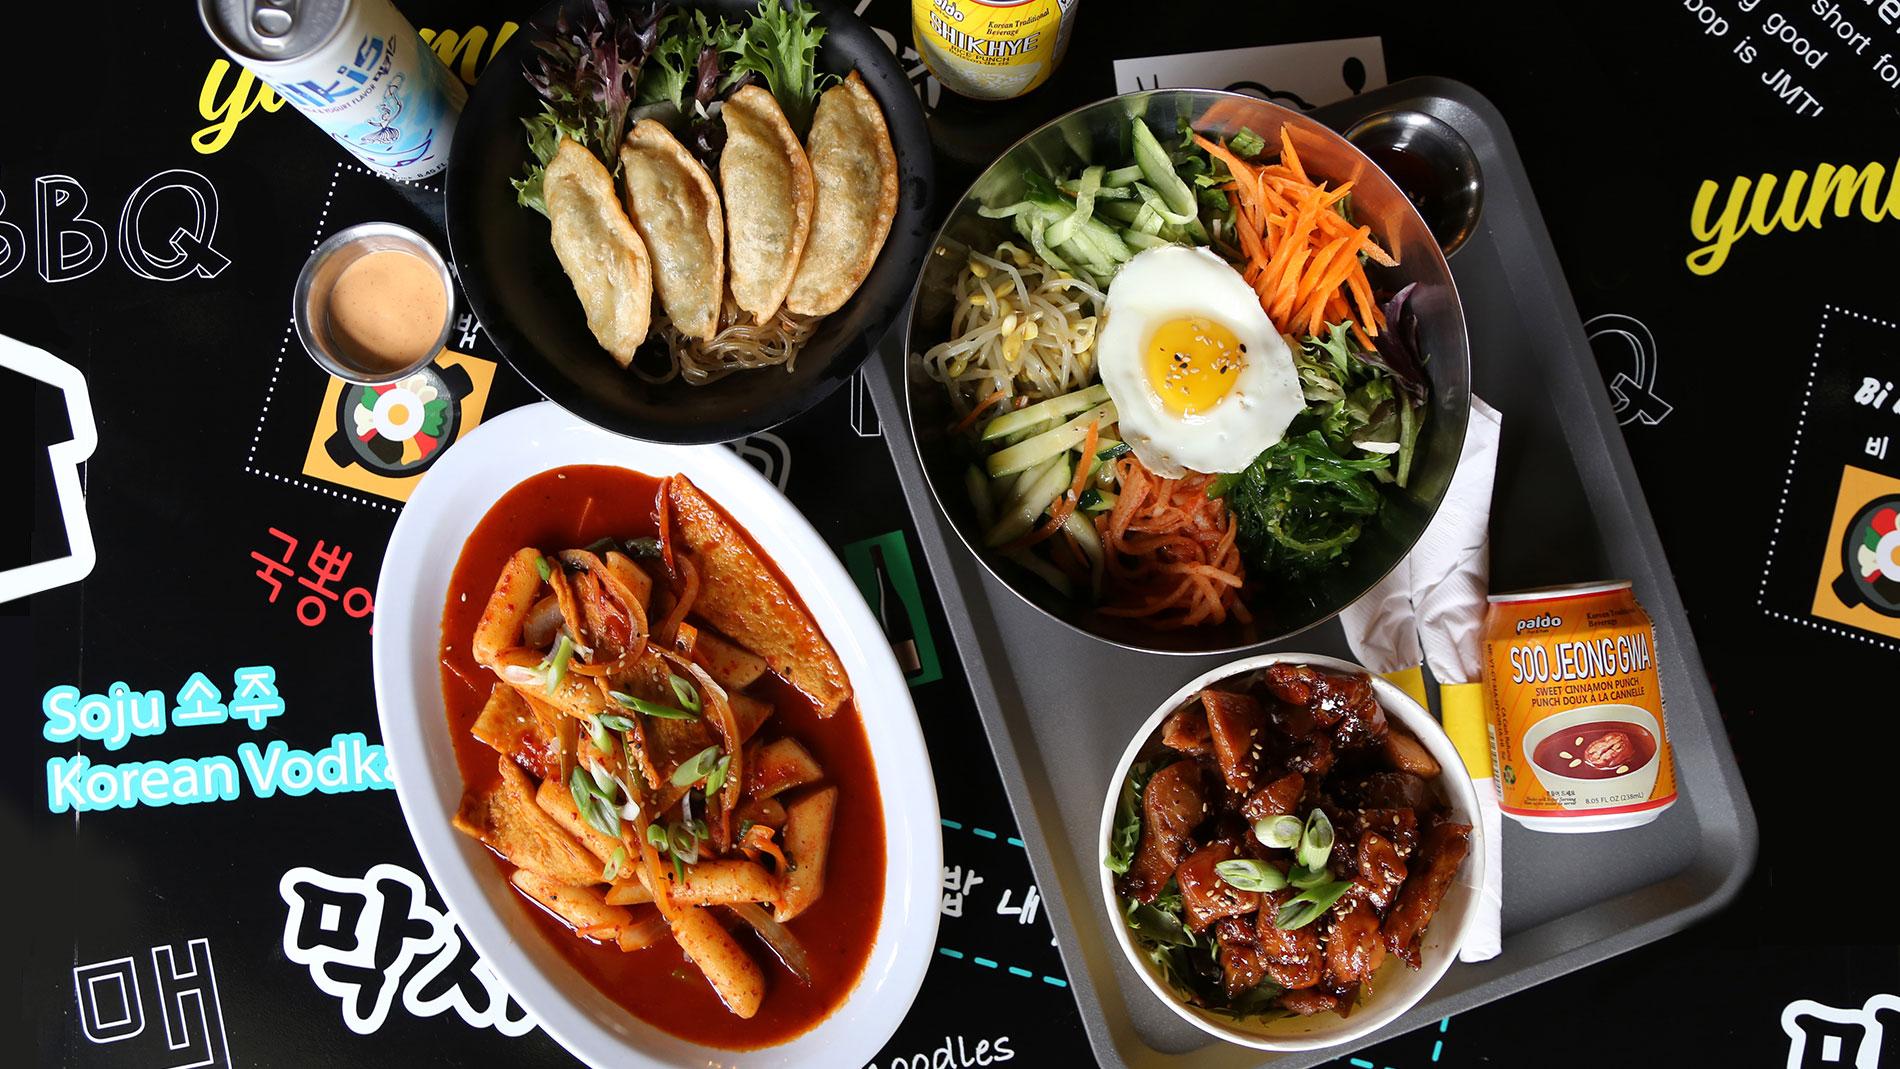 a selection of dishes from k-bop